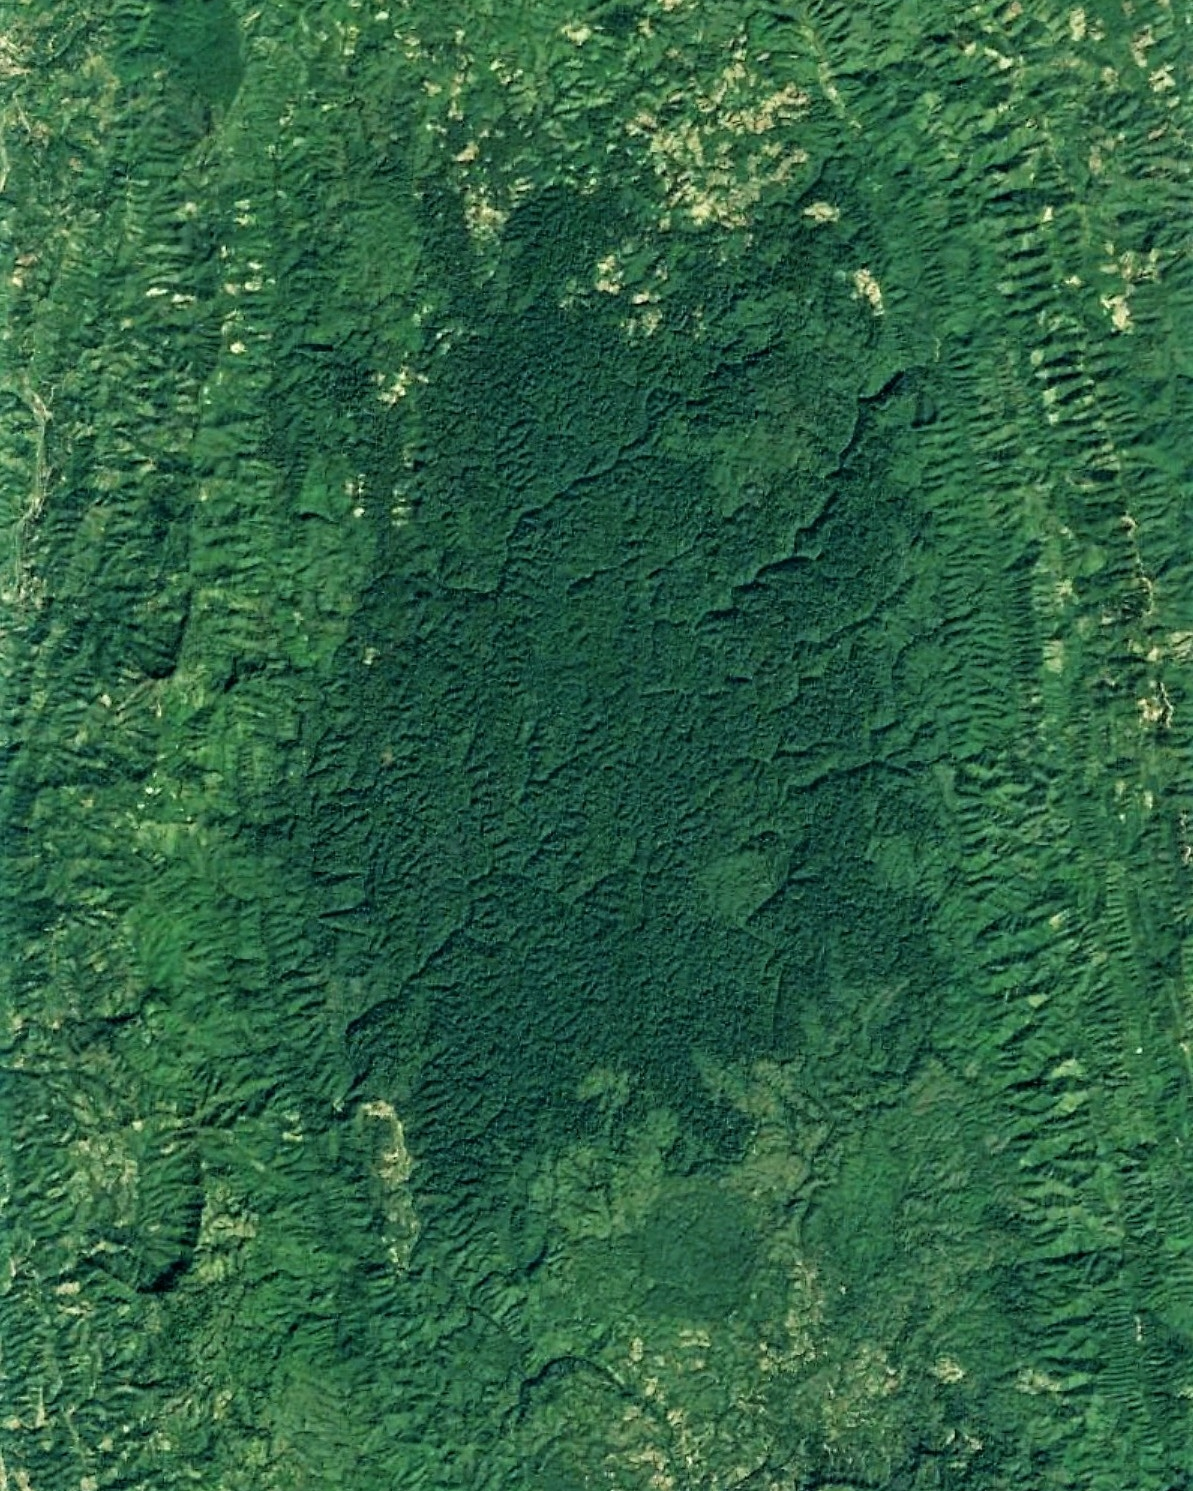 Part of Pablakhali reserved forest (zoomed out). Image width: 12 kilometer